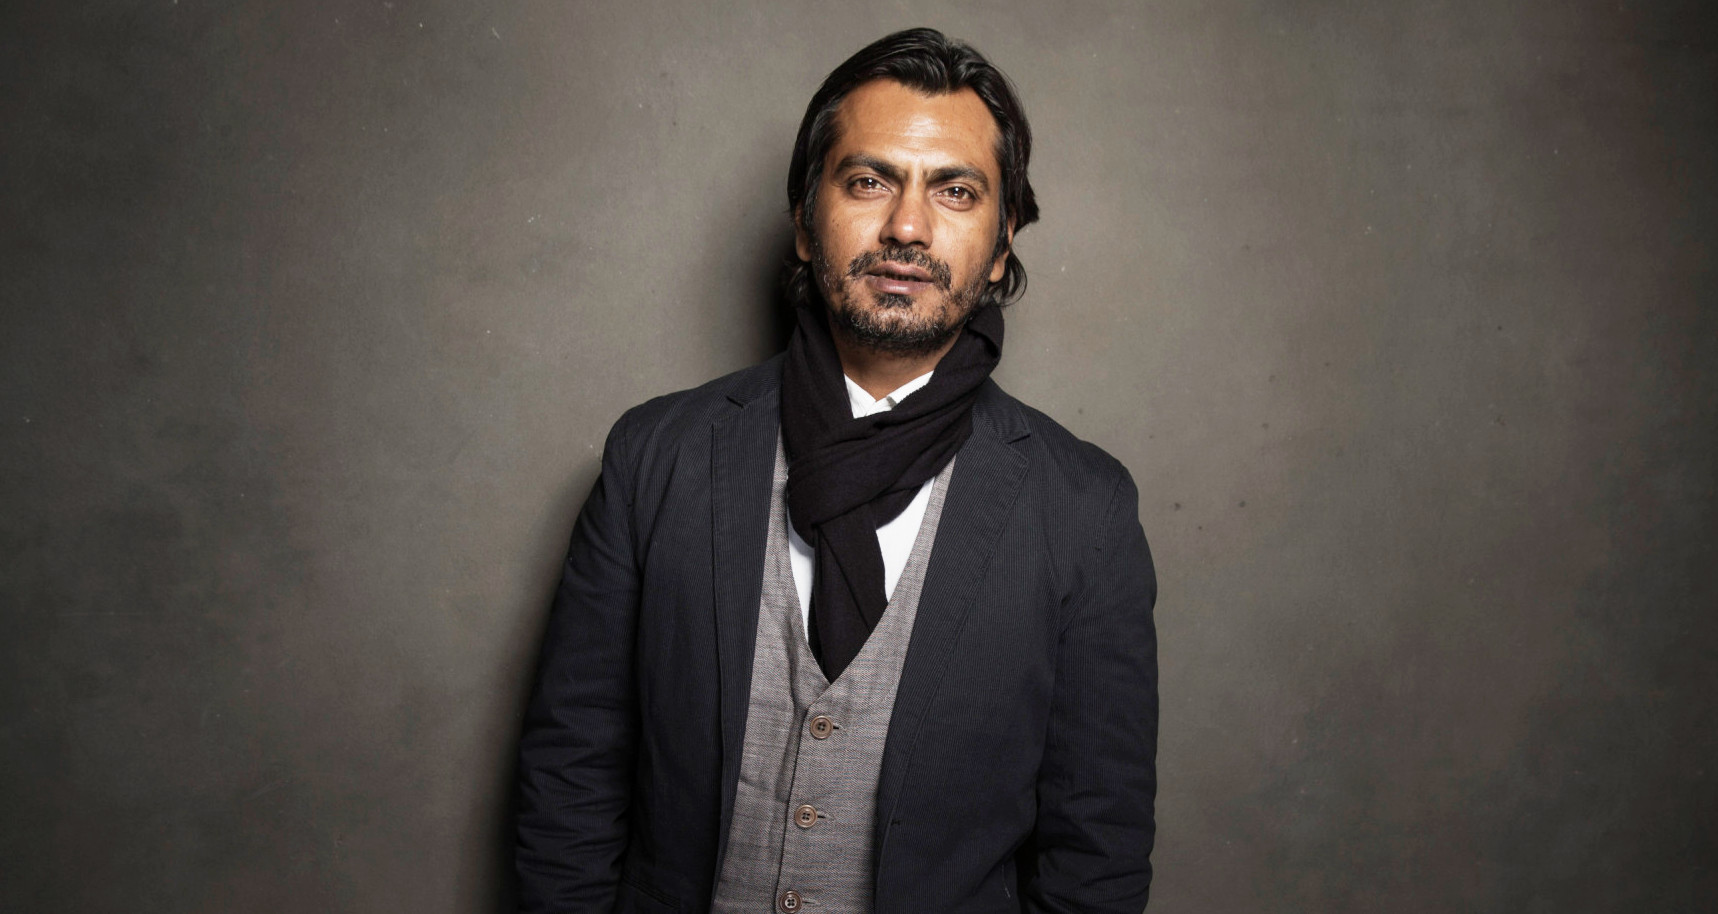 Actor Nawazuddin Siddiqui in Rajinikanth next film with Karthik Subbaraj